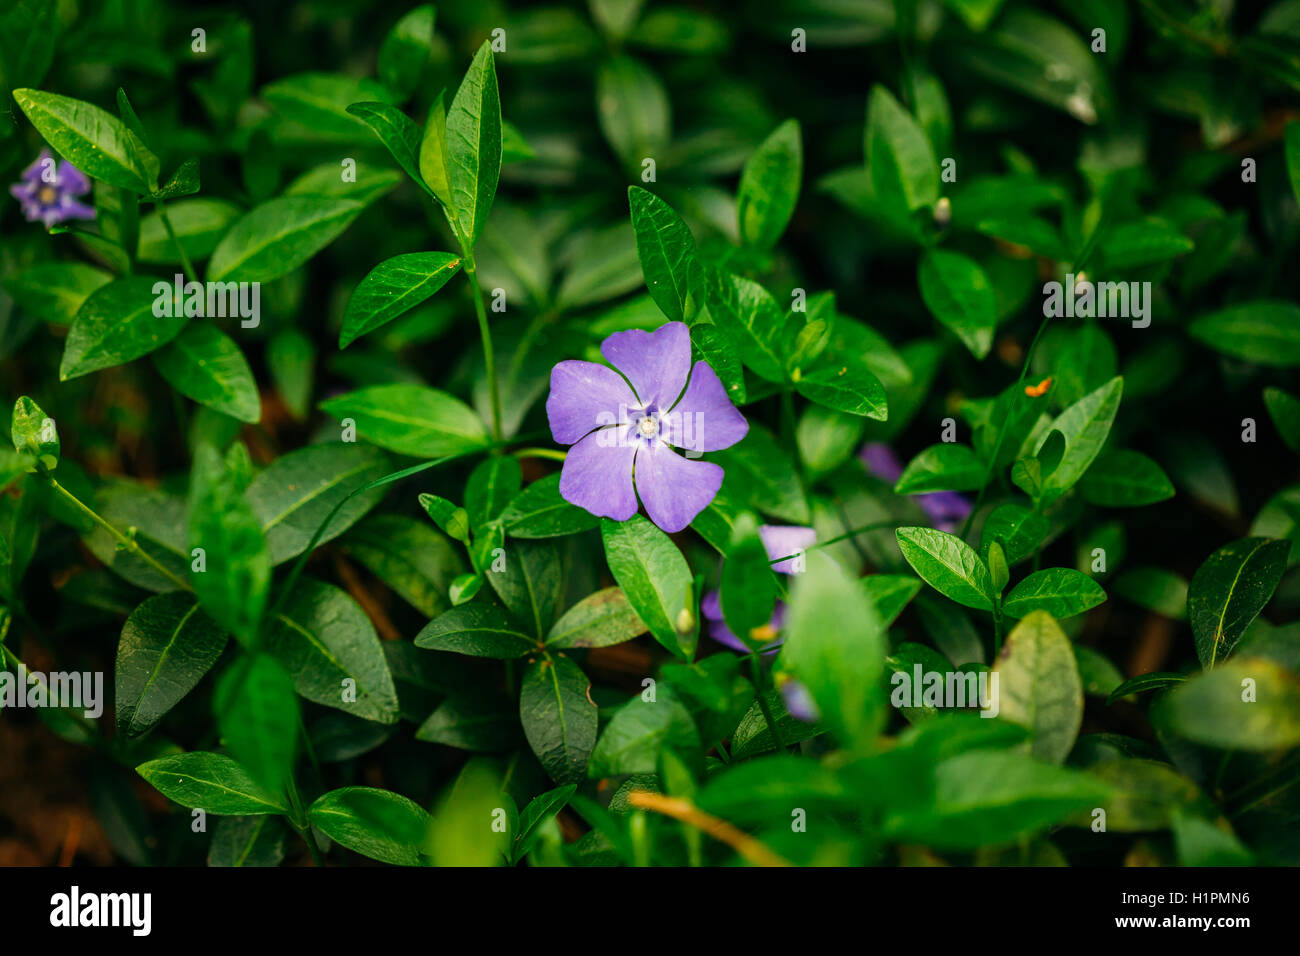 Flower With Five Petals Stock Photos Flower With Five Petals Stock